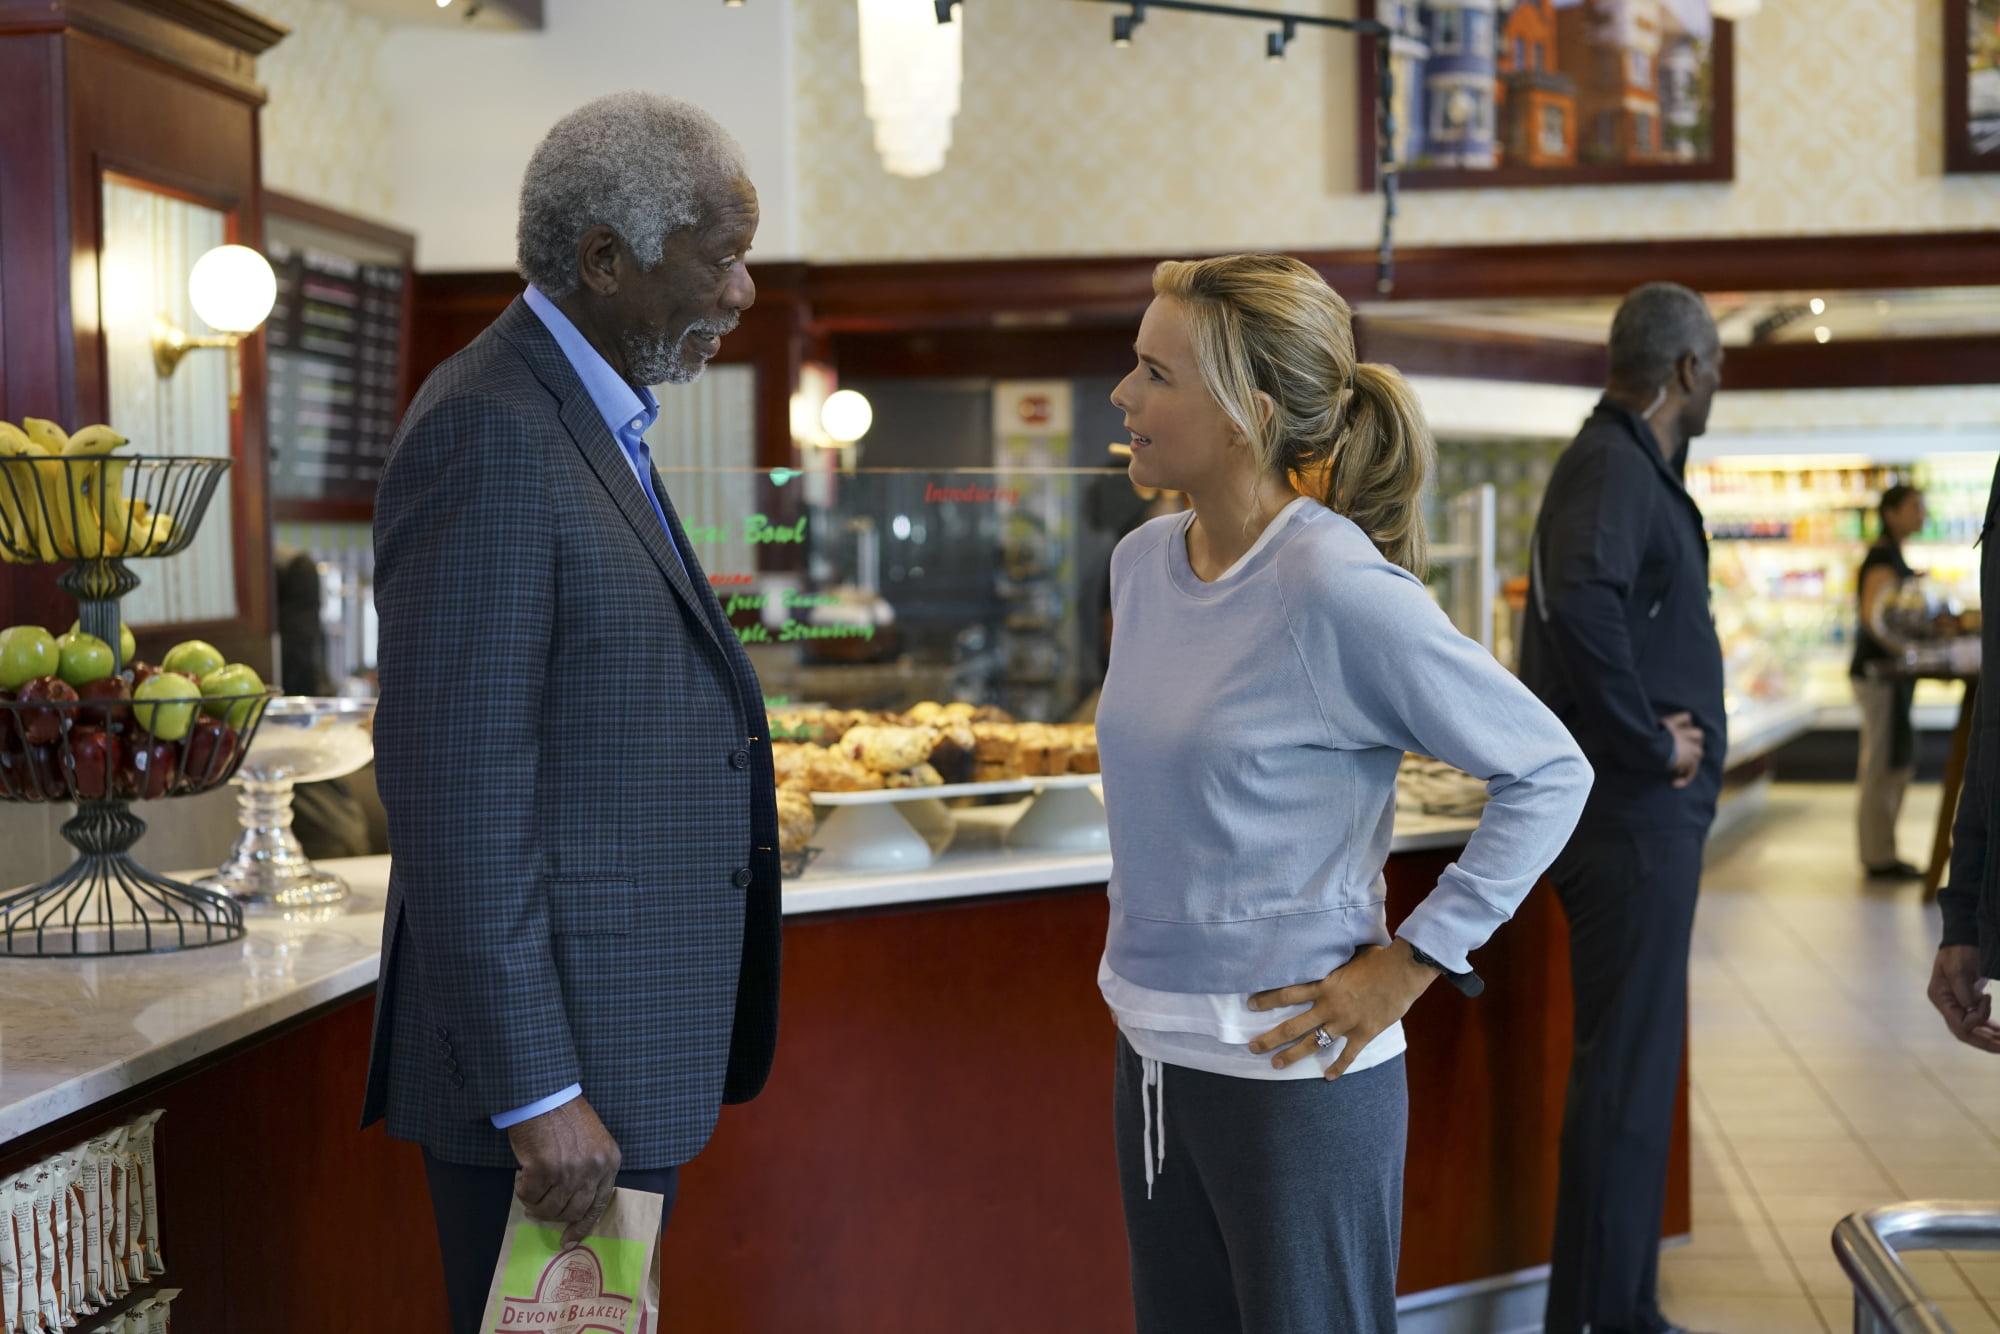 Madam secretary returns next month ryno 39 s tv for Why is bebe neuwirth leaving madam secretary